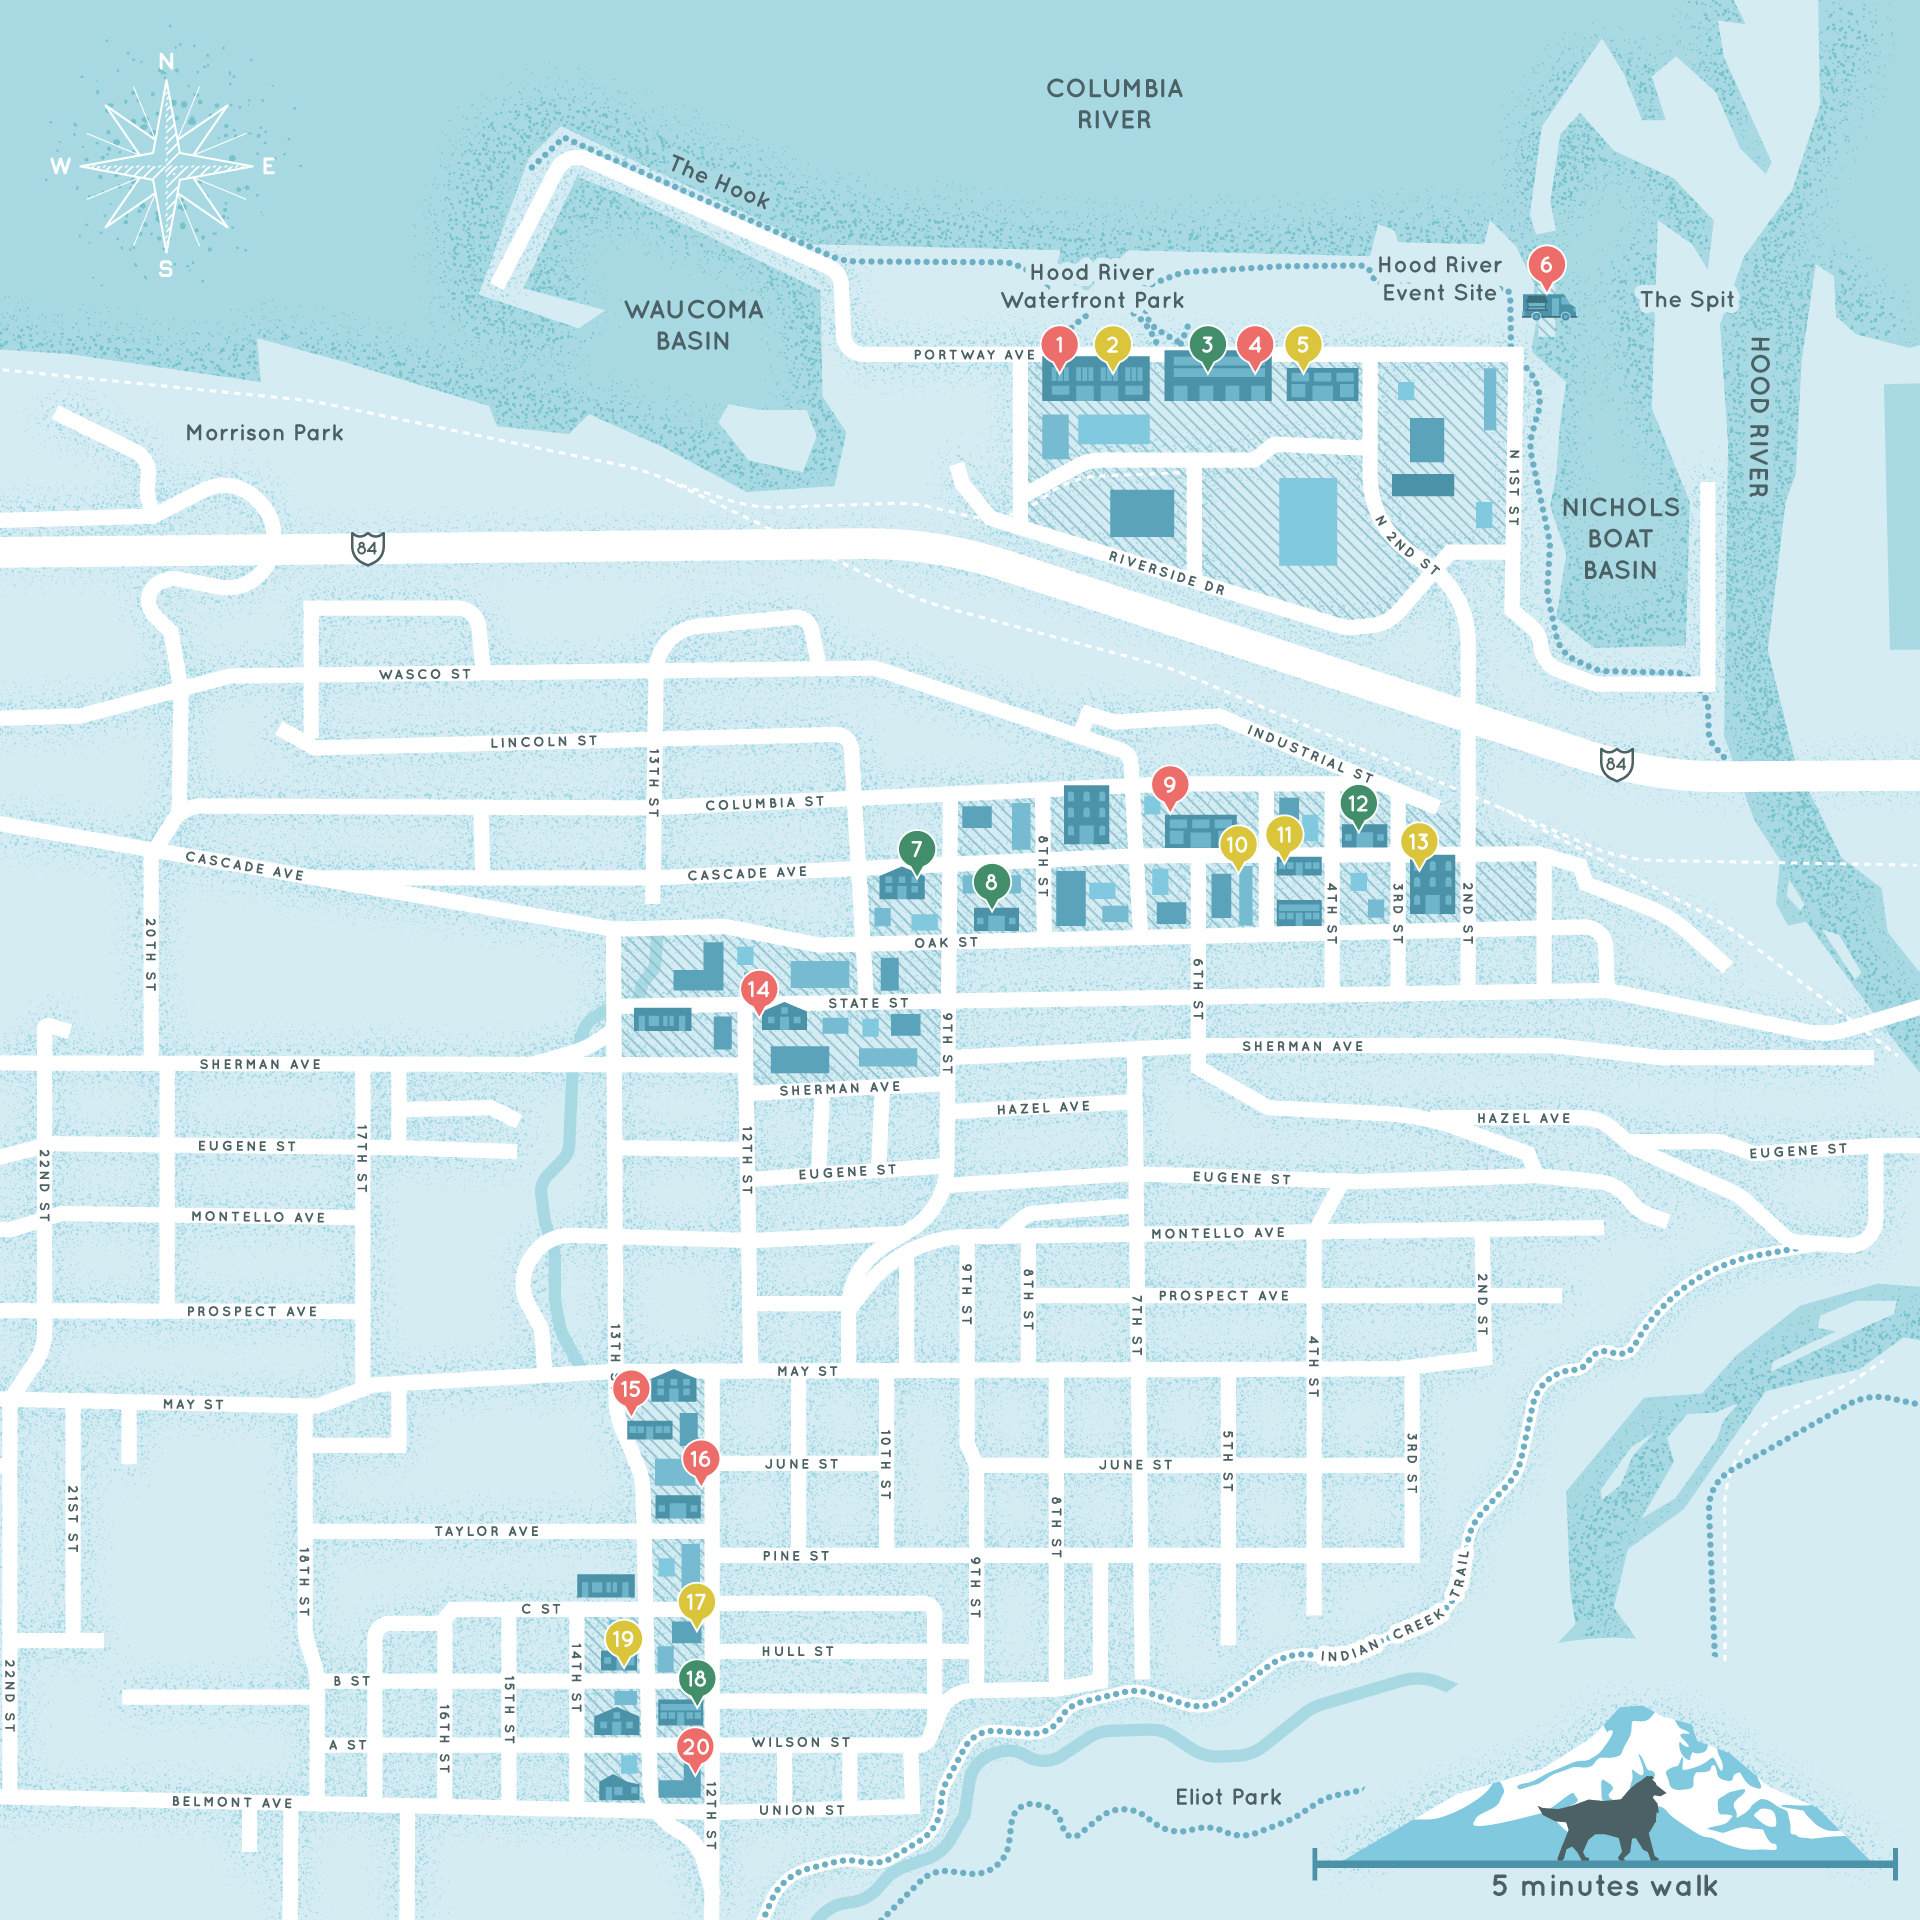 Map of Hood River highlighting points of interest